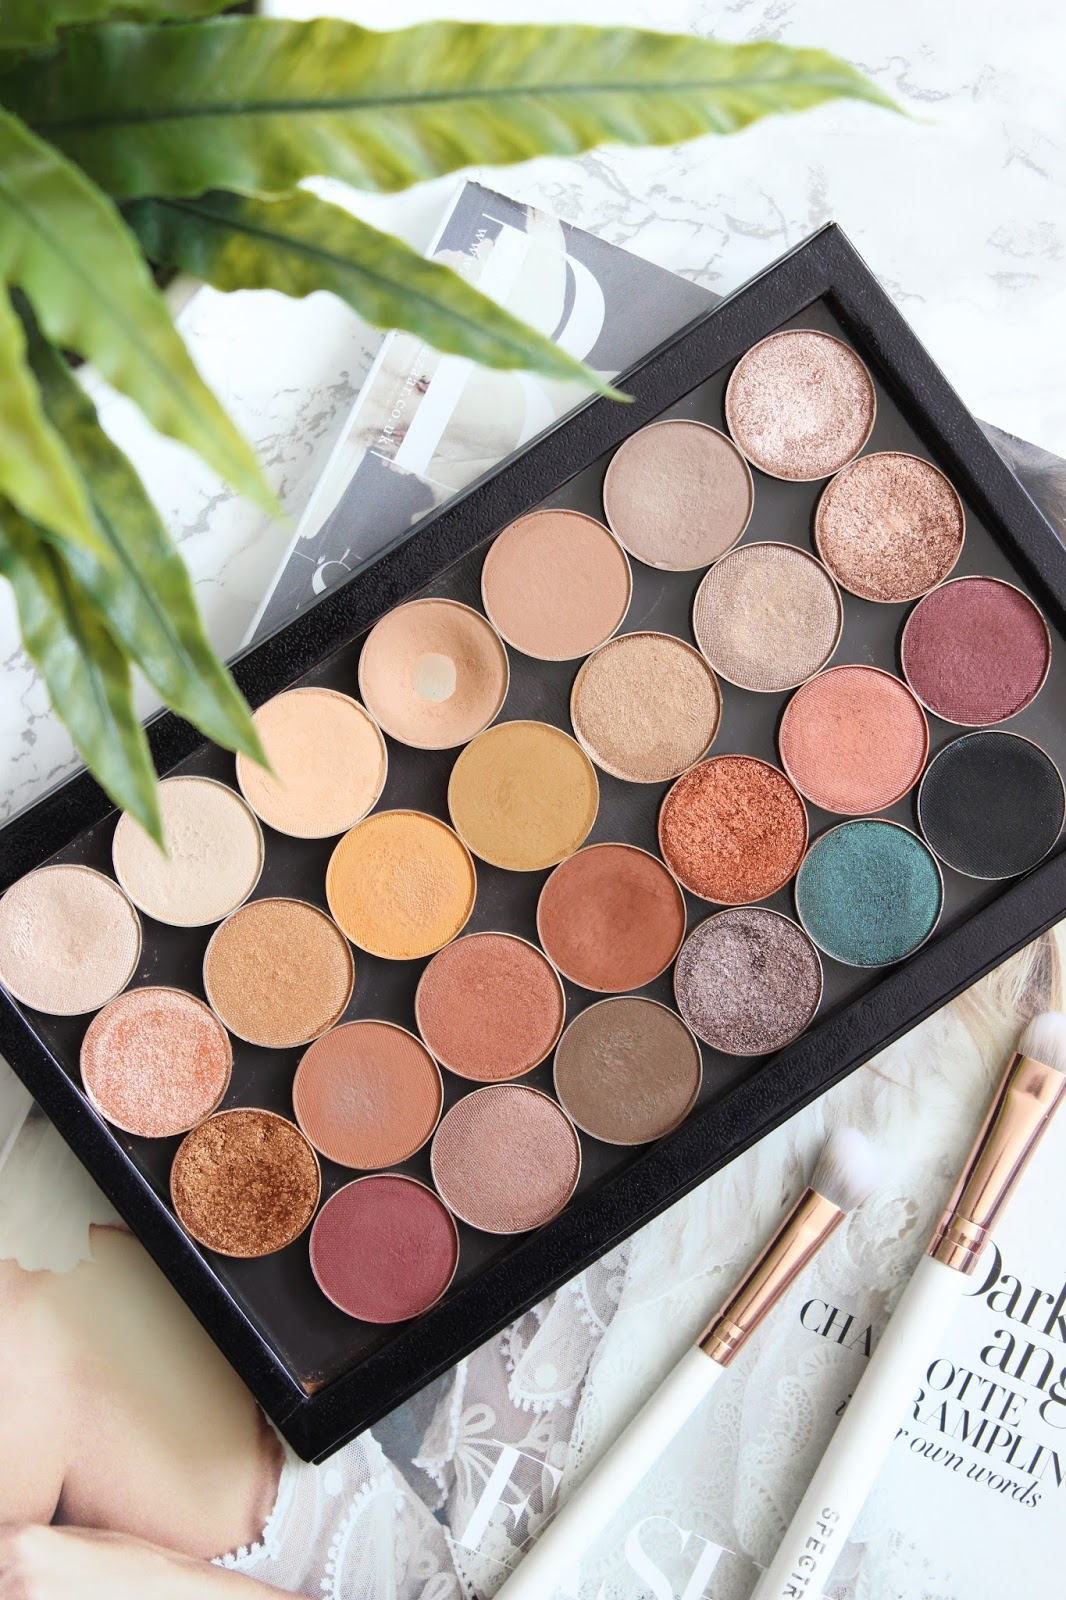 I Finally Finished My Makeup Geek Palette | Review & Swatches